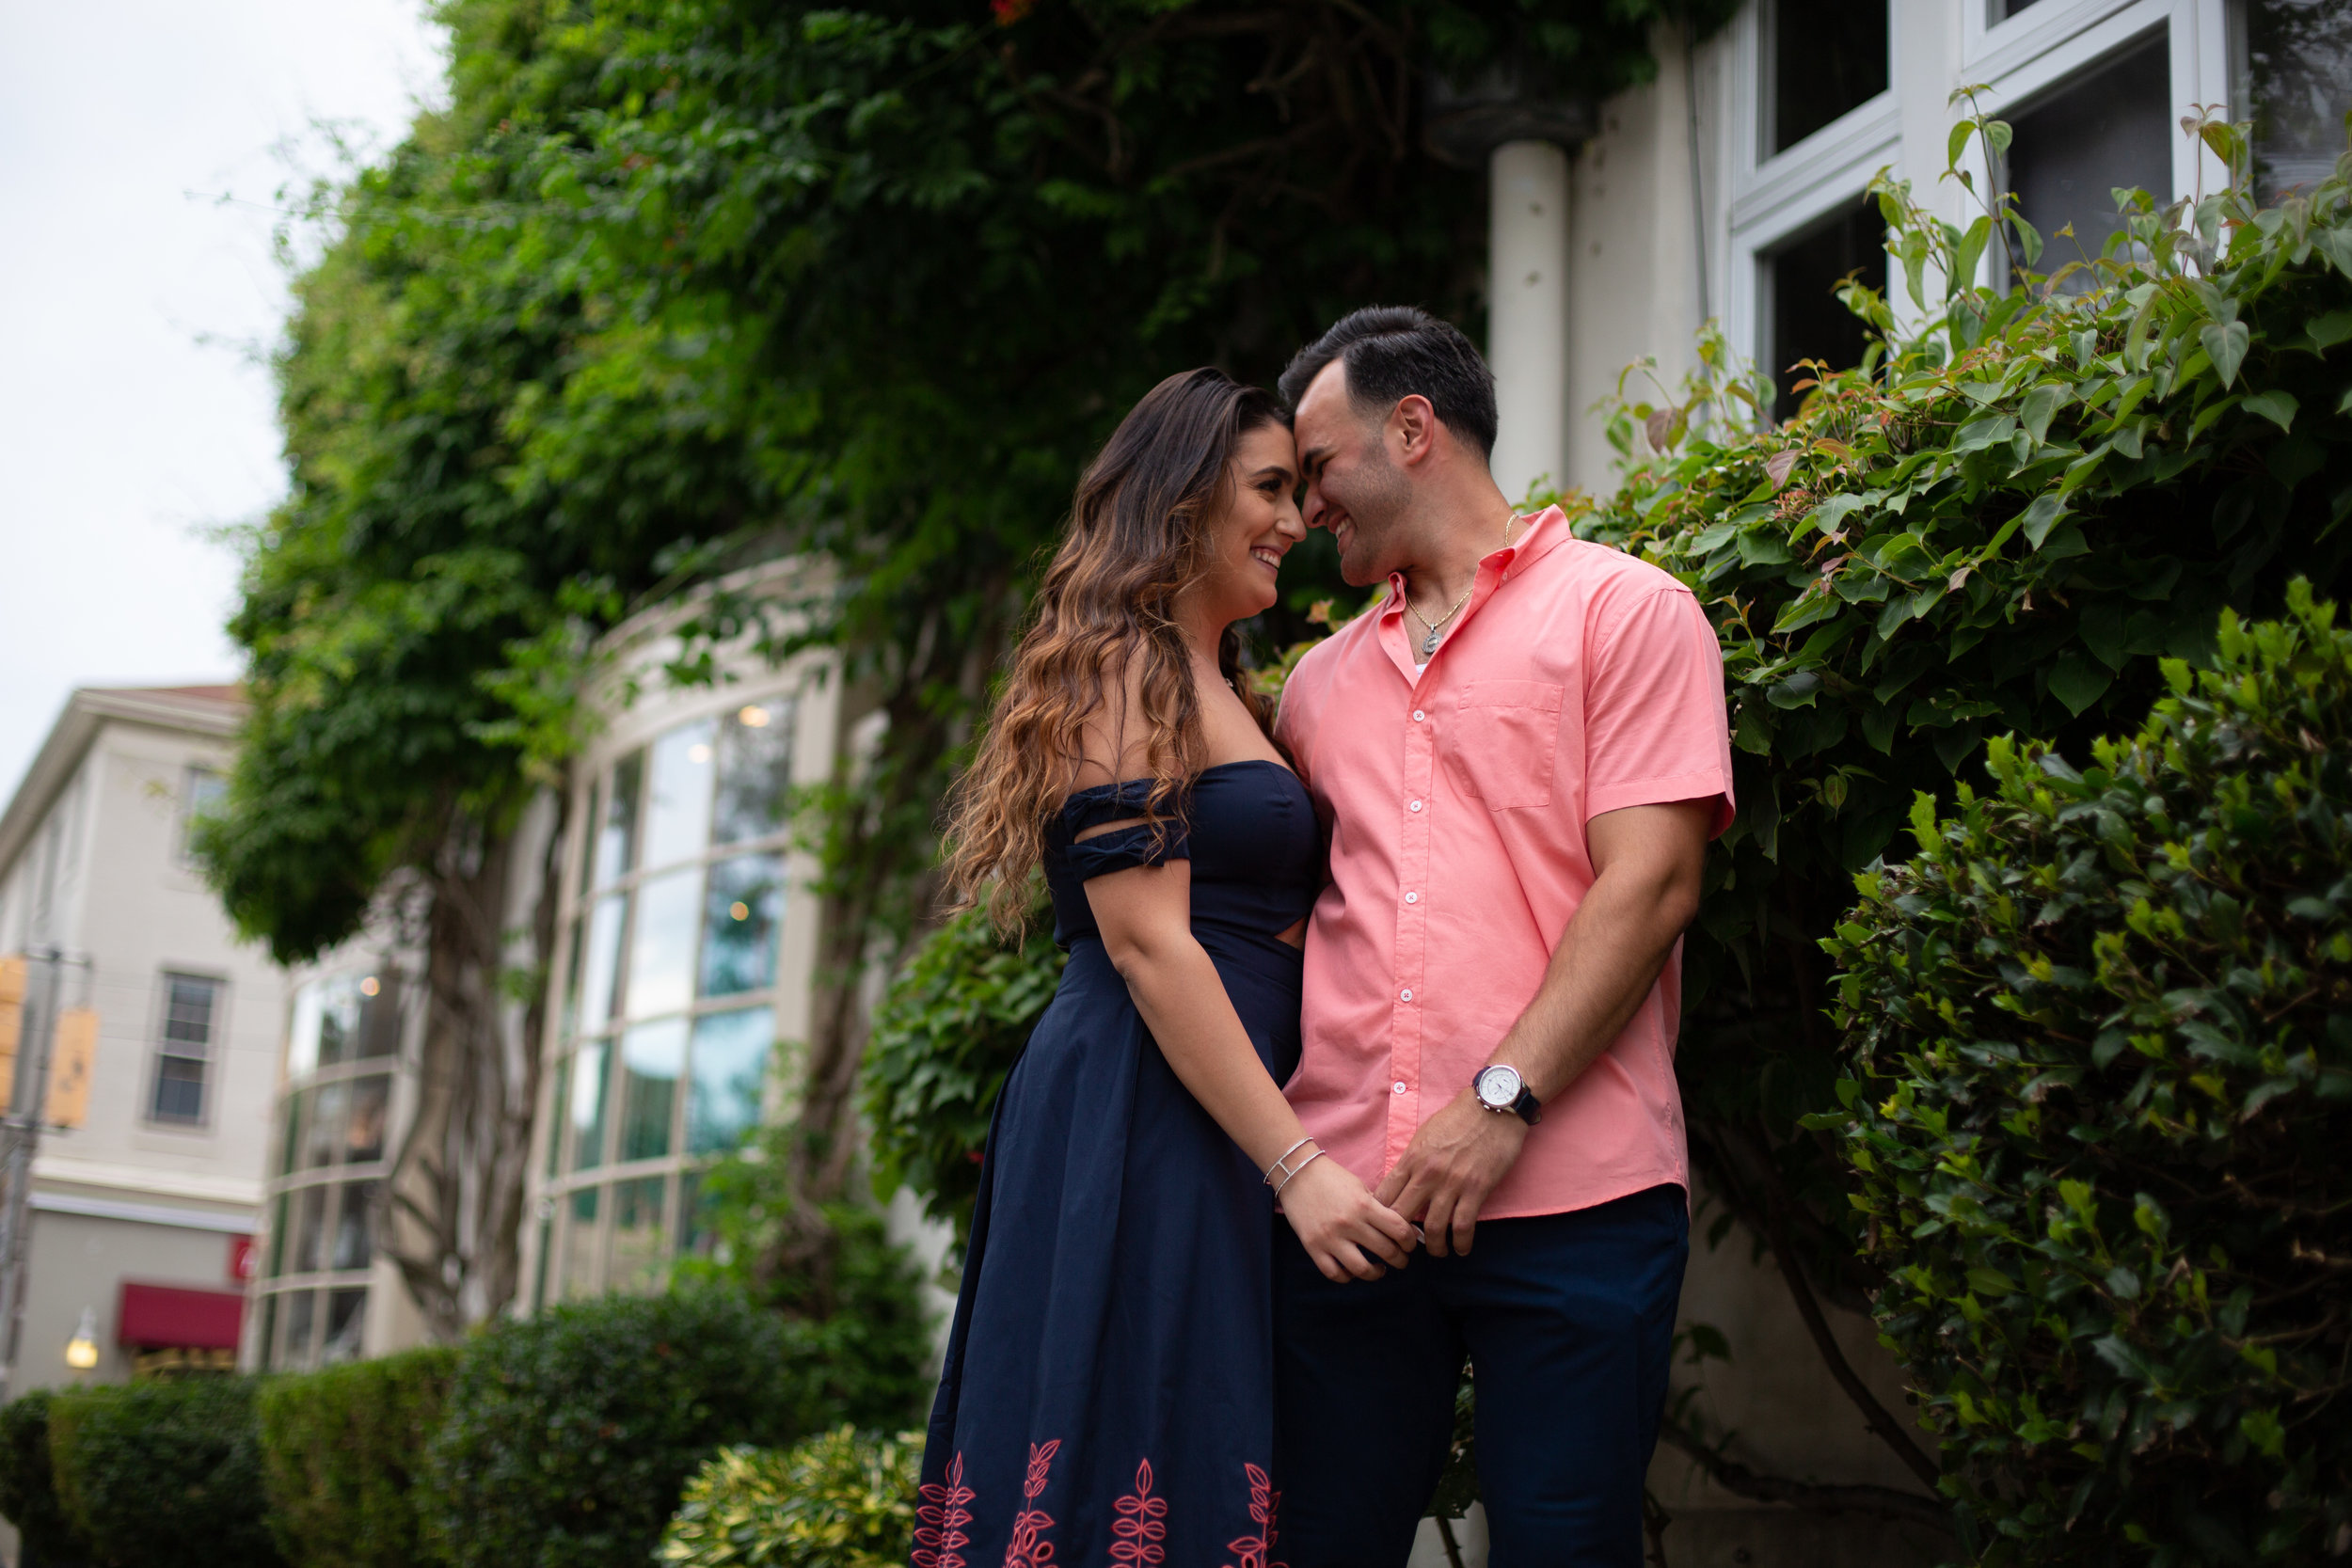 Chestnut Hill Engagement love story nurse and firefighter (40 of 73)040.jpg